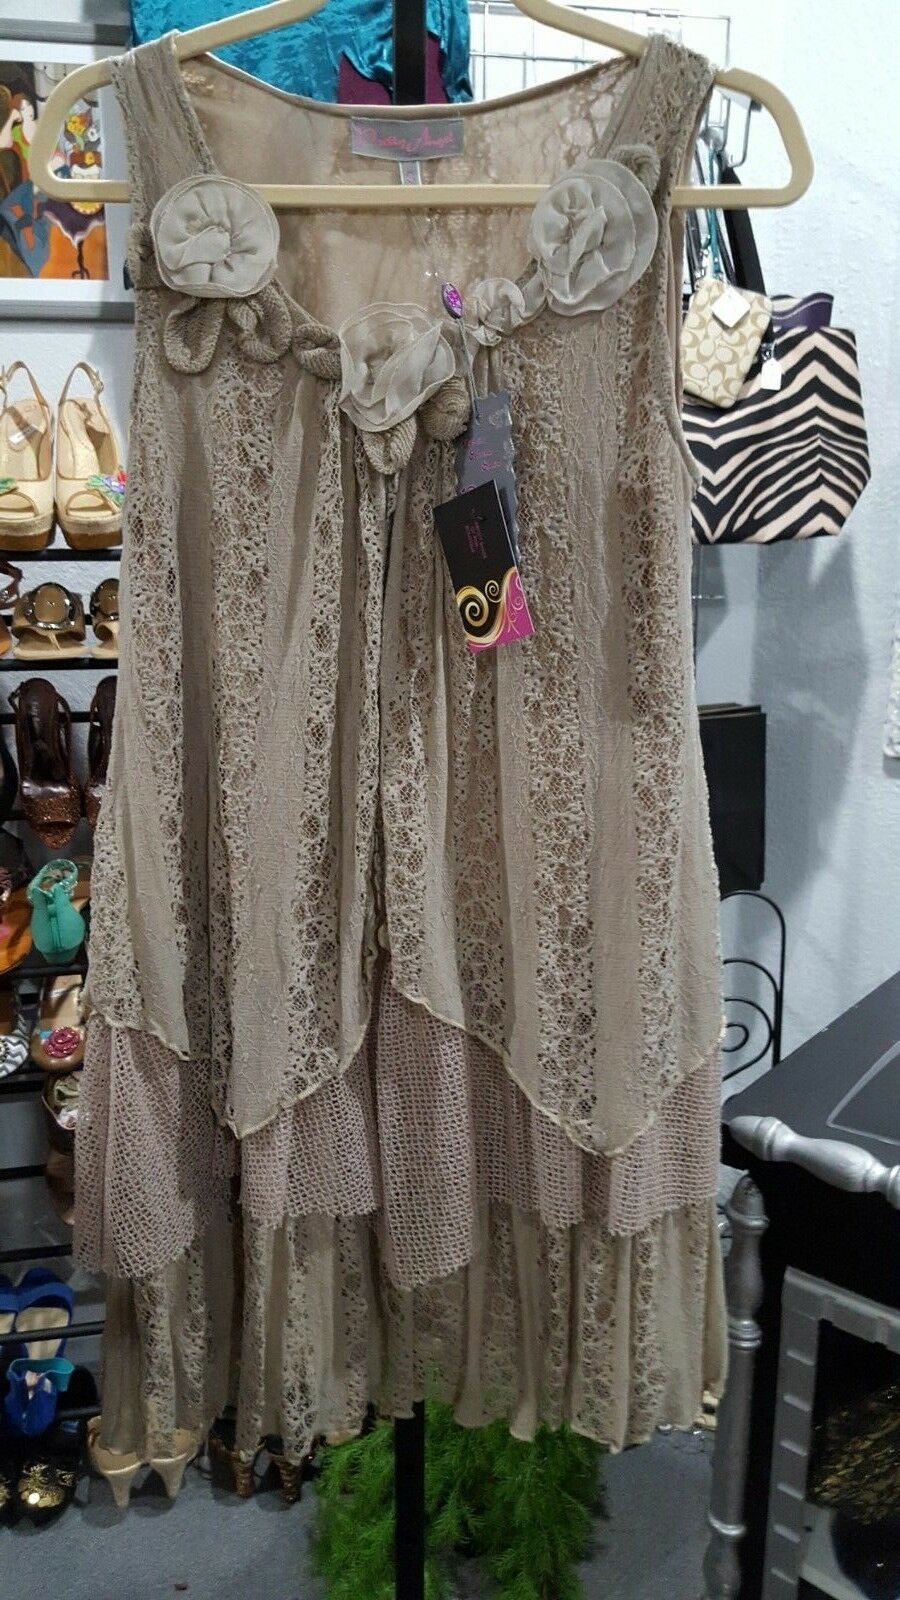 NWT PRETTY ANGEL TAN MULTILAYER IRREGULAR LACE NET TIERED TUNIC TOP DRESS SZ. S